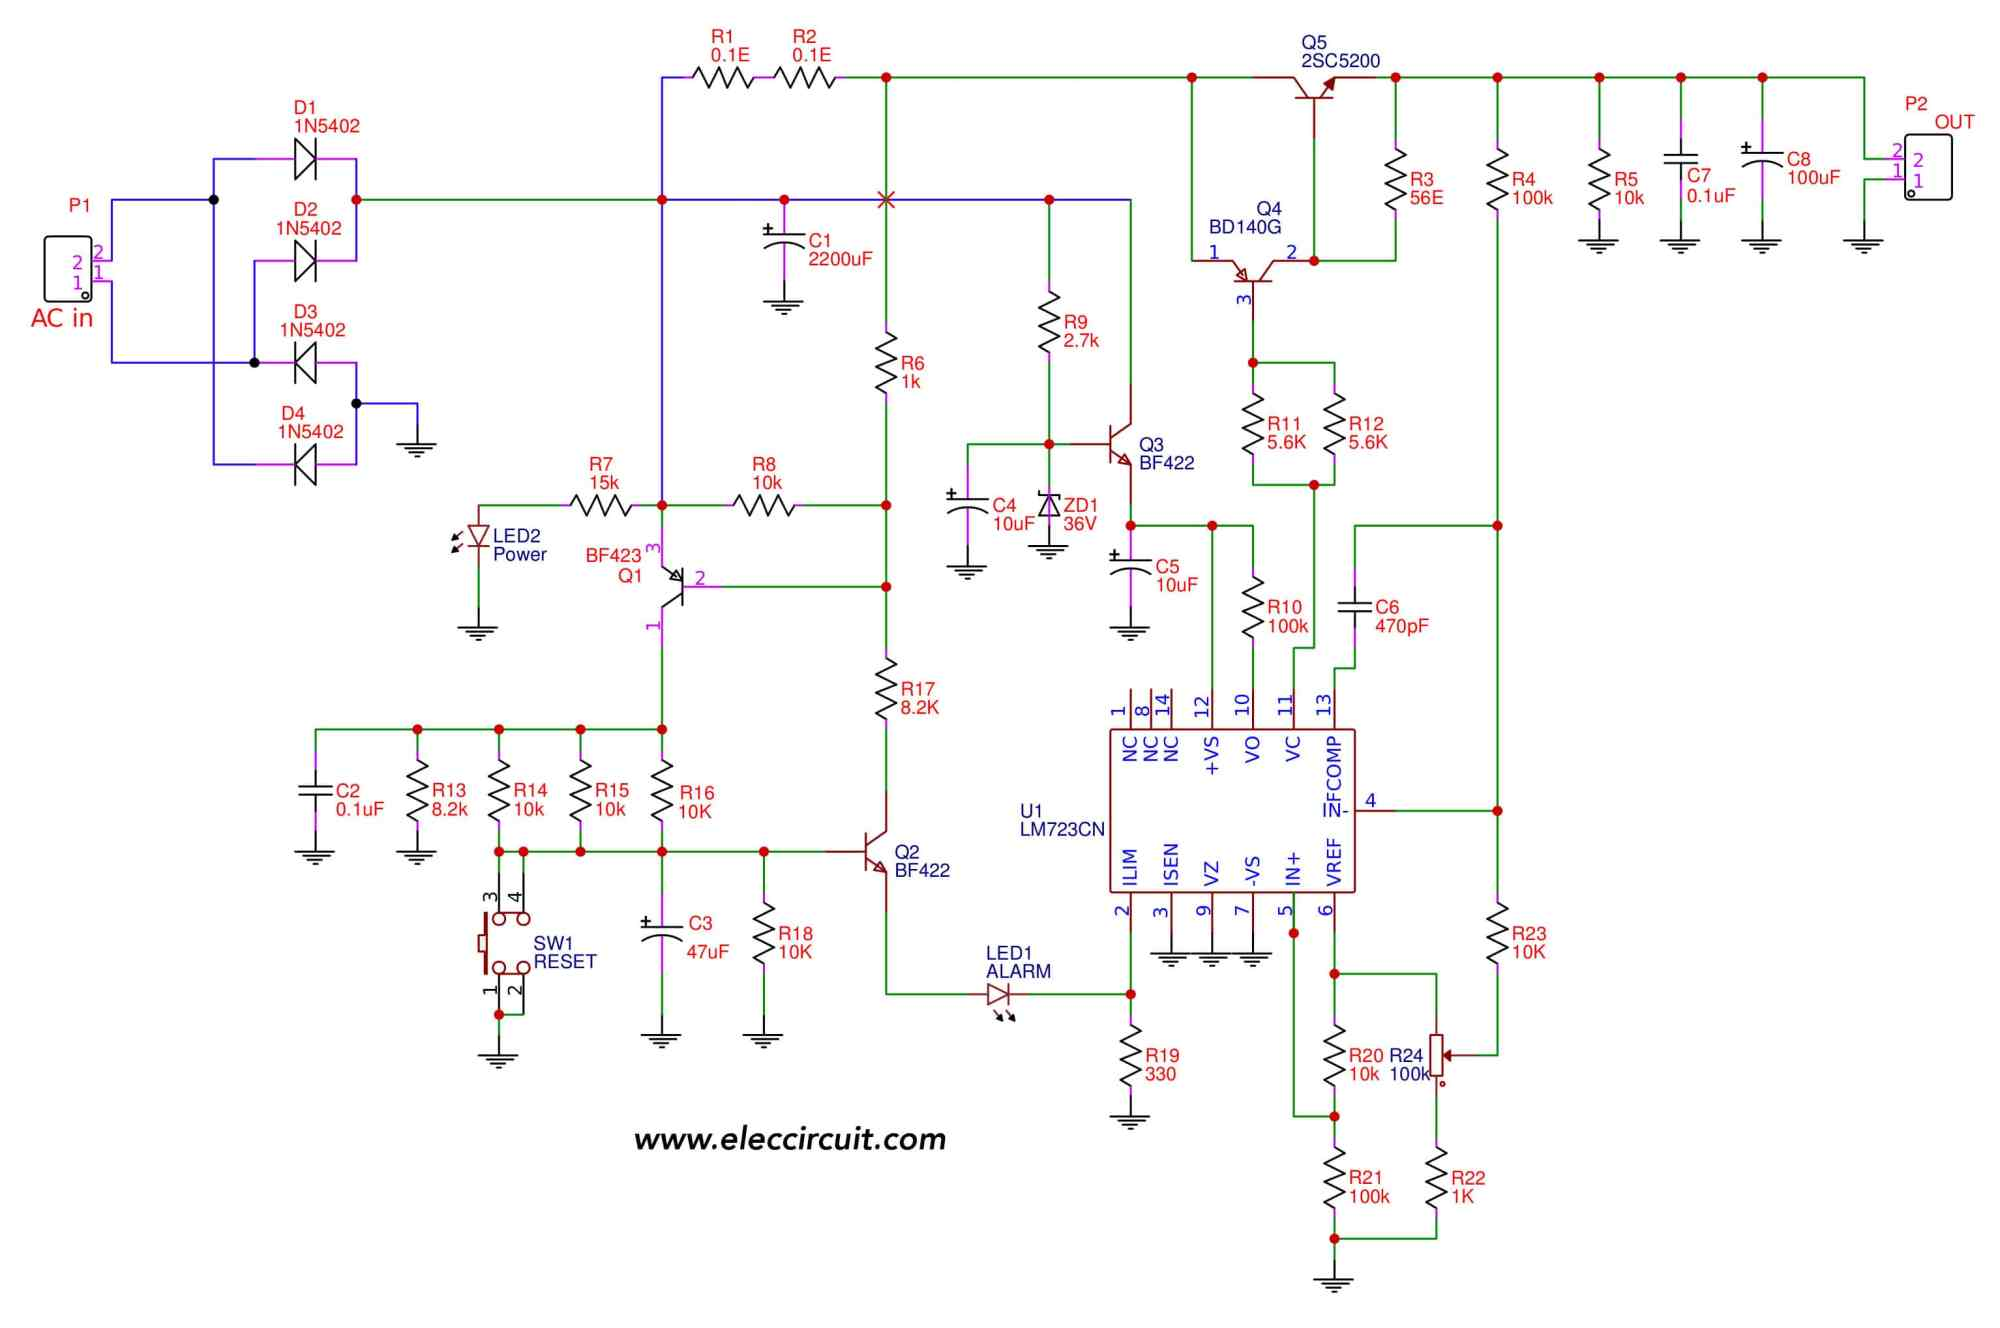 hight resolution of power dcdc converter circuit diagram electronic circuit diagrams dcdc converter circuit diagram electronic circuit diagrams wiring